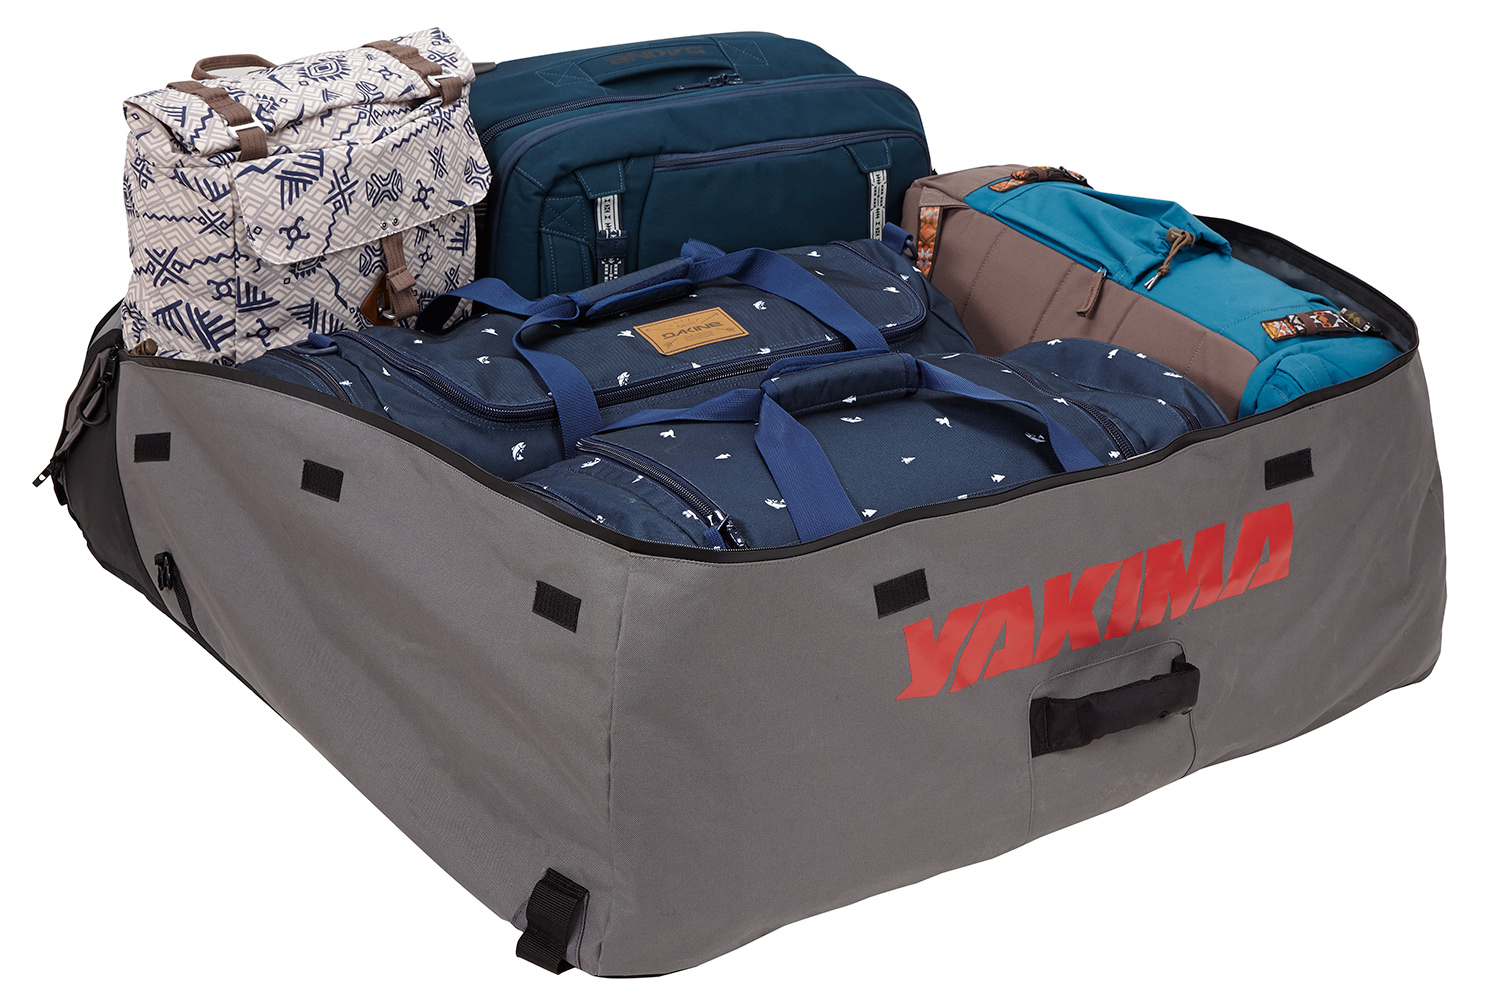 Yakima Drytop Rooftop Cargo Bag Roof Luggage Carrier